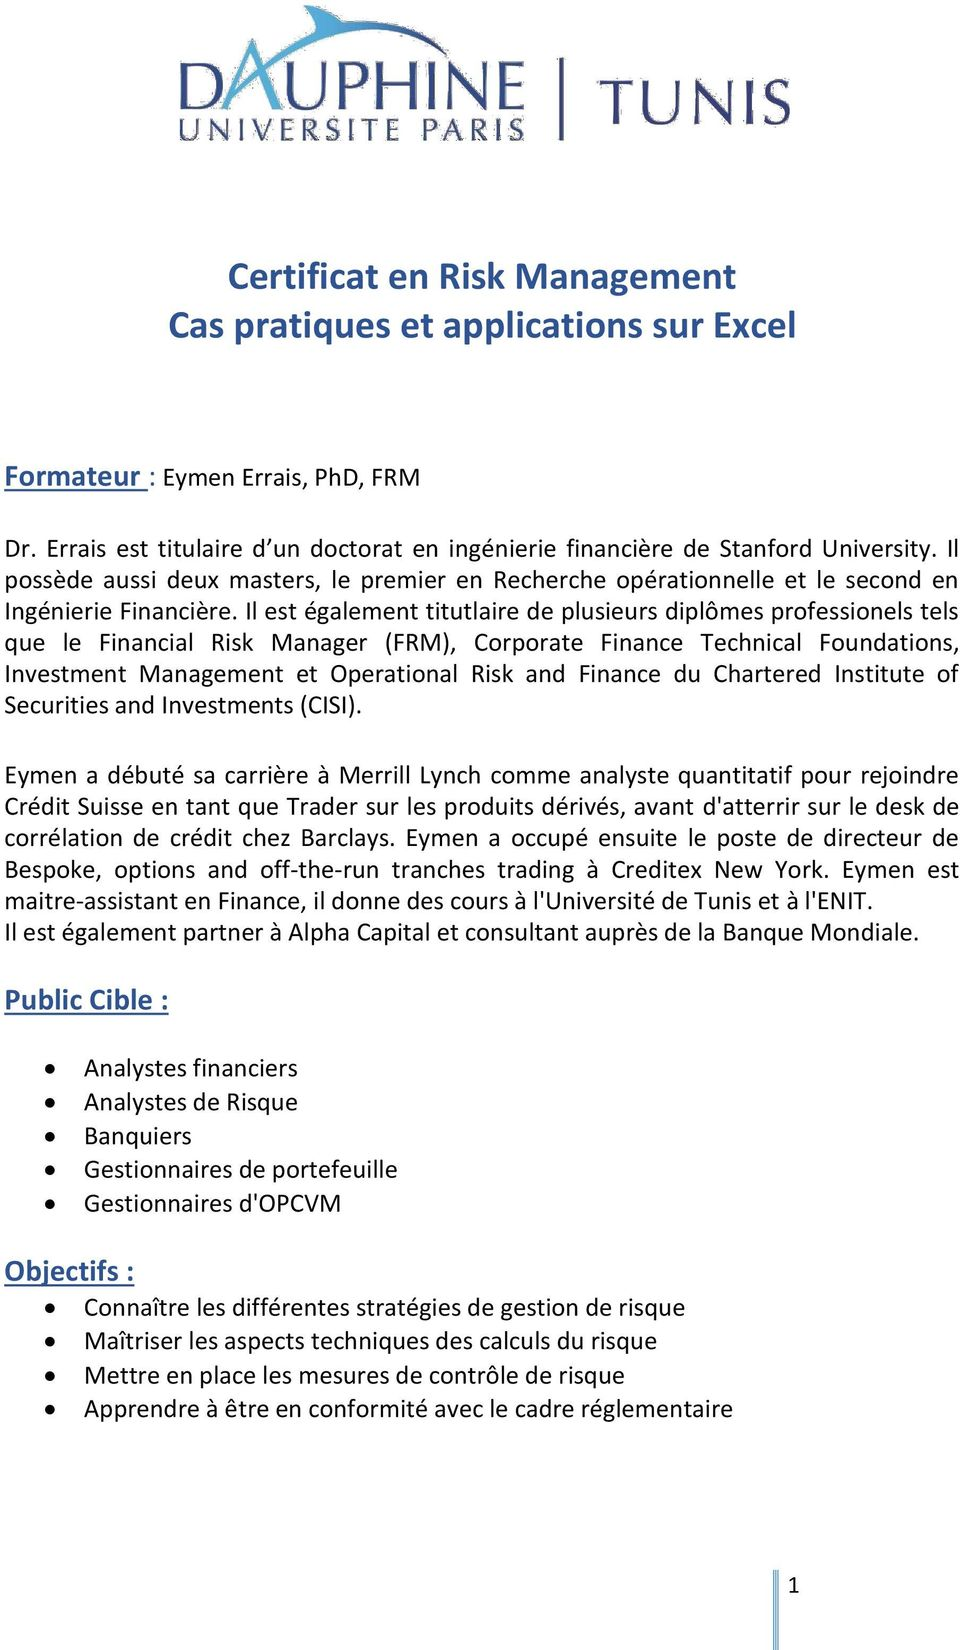 Il est également titutlaire de plusieurs diplômes professionels tels que le Financial Risk Manager (FRM), Corporate Finance Technical Foundations, Investment Management et Operational Risk and